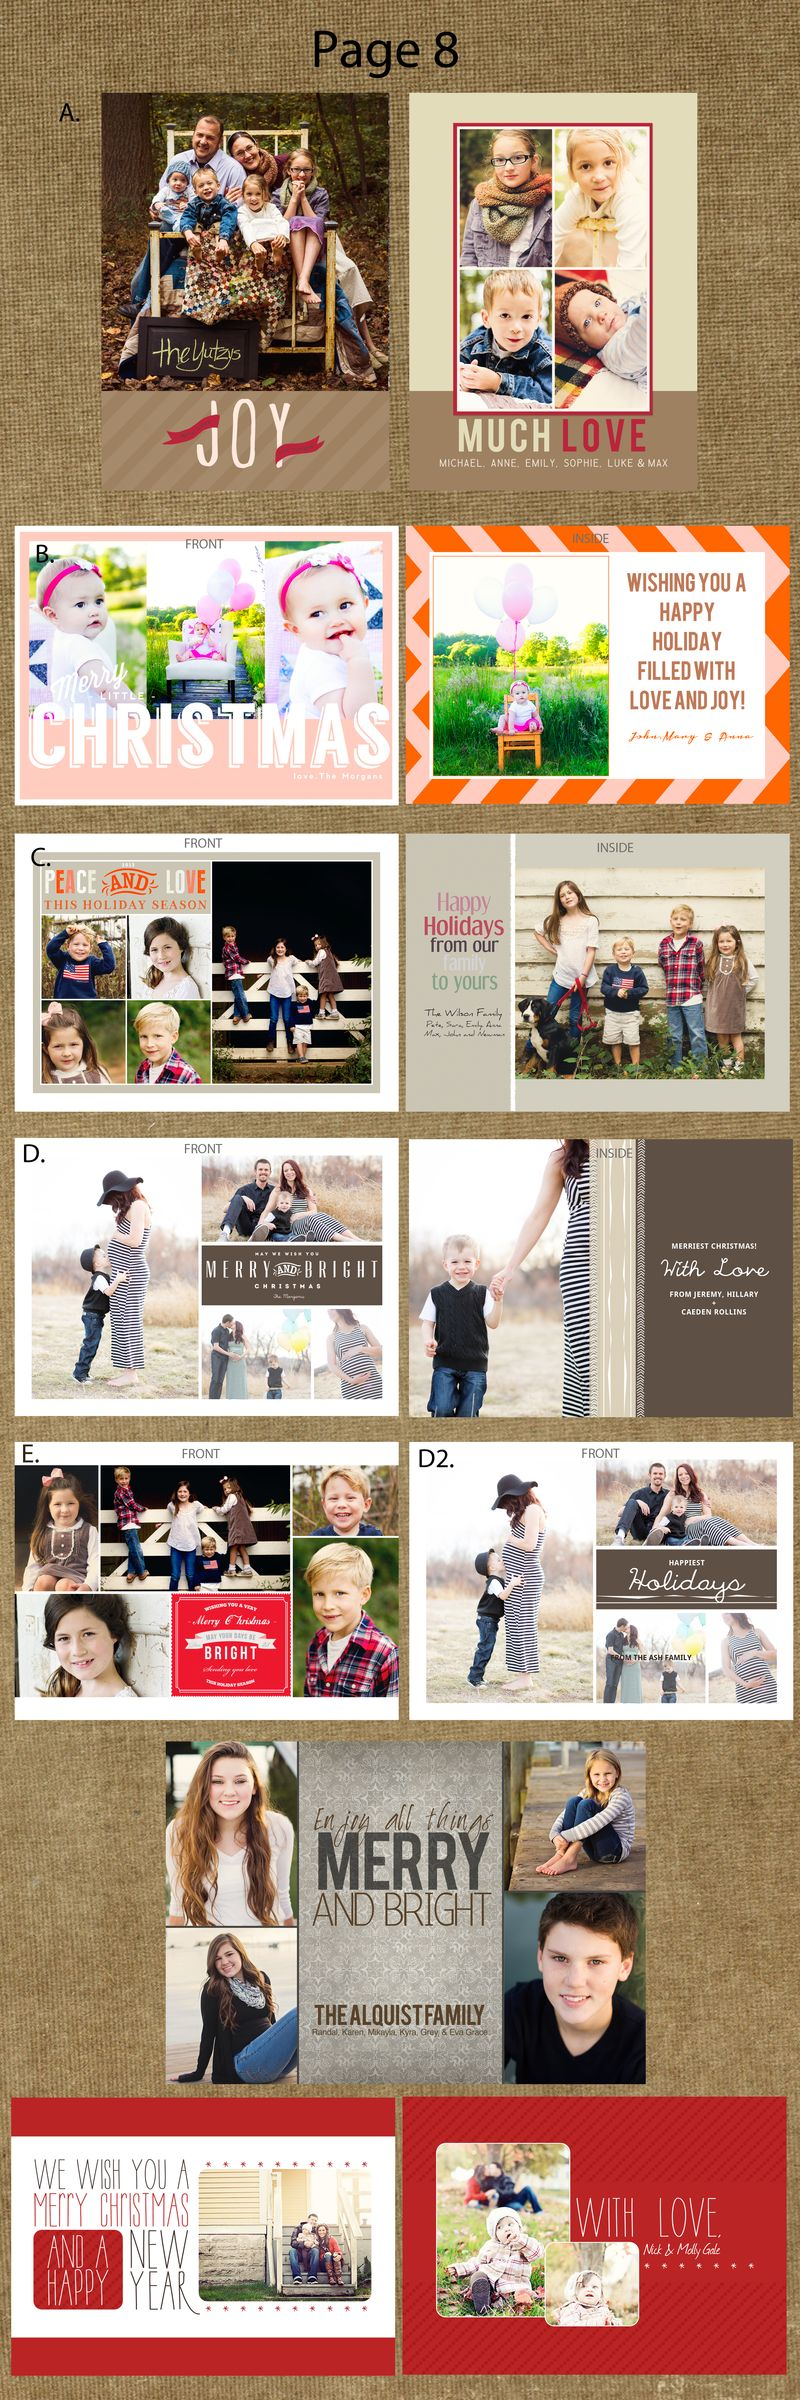 Page 8 cards